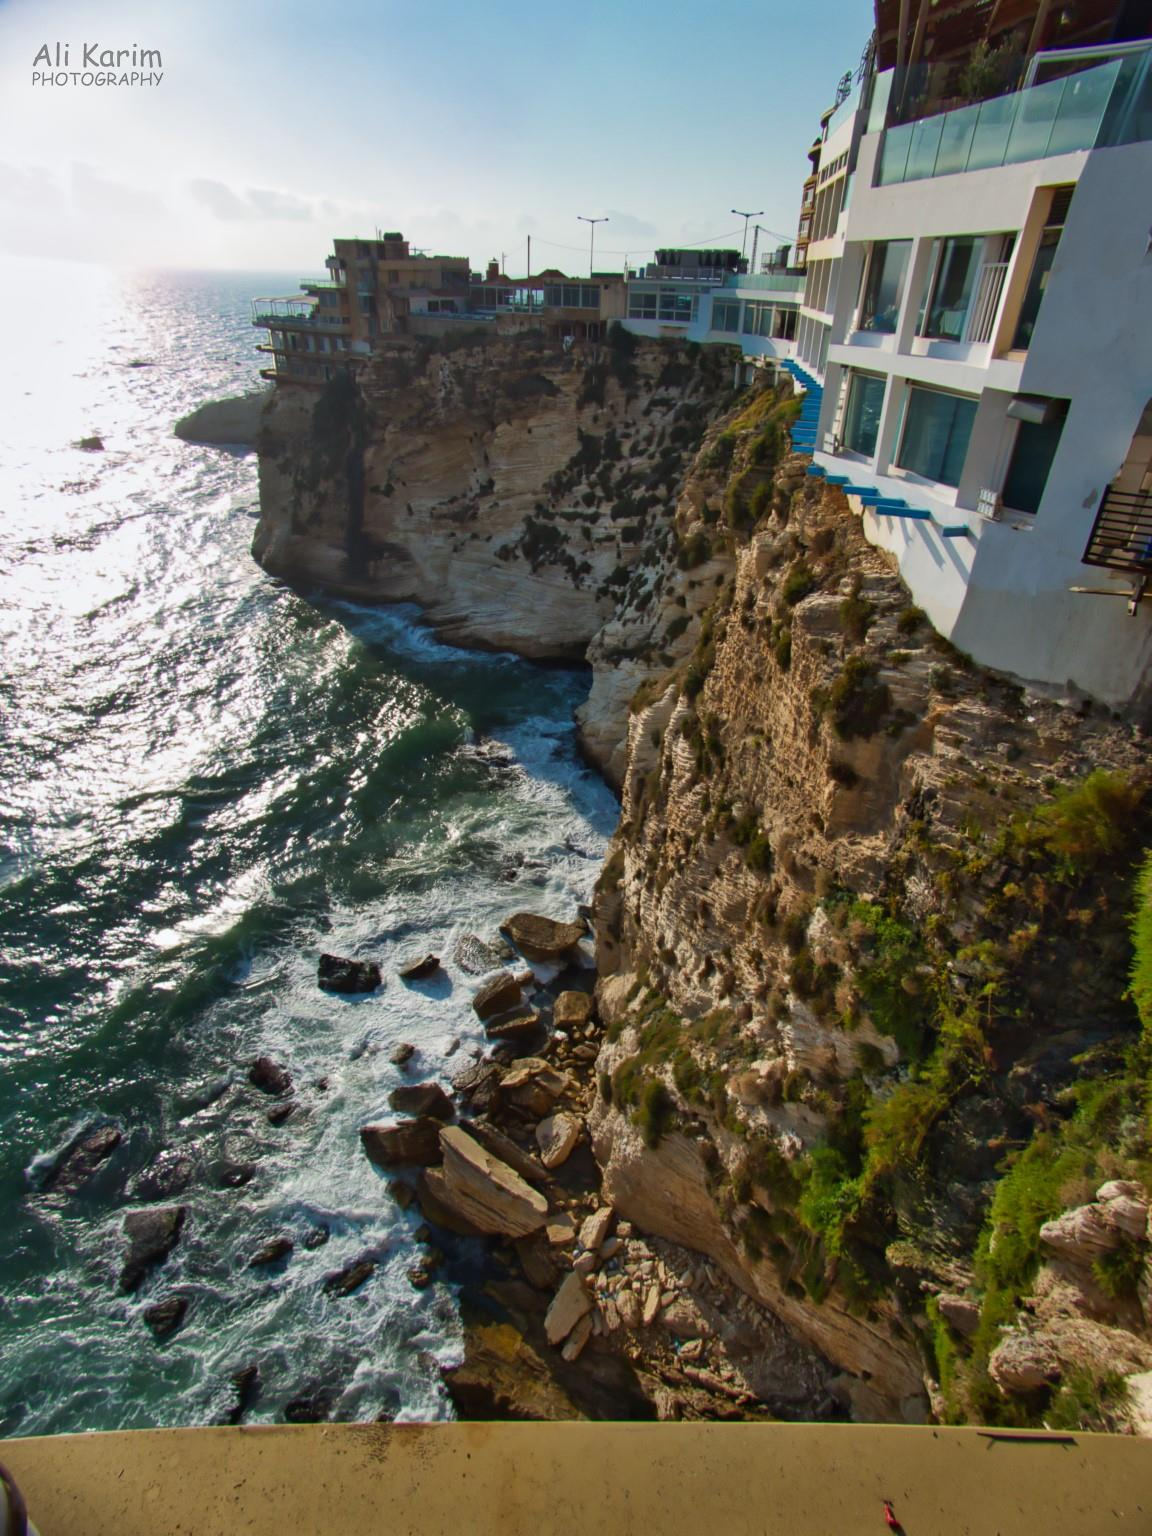 Many restaurants on the clifftops overlooking the Mediterranean near Raouche Rock; a little too close to the cliff edge for my comfort